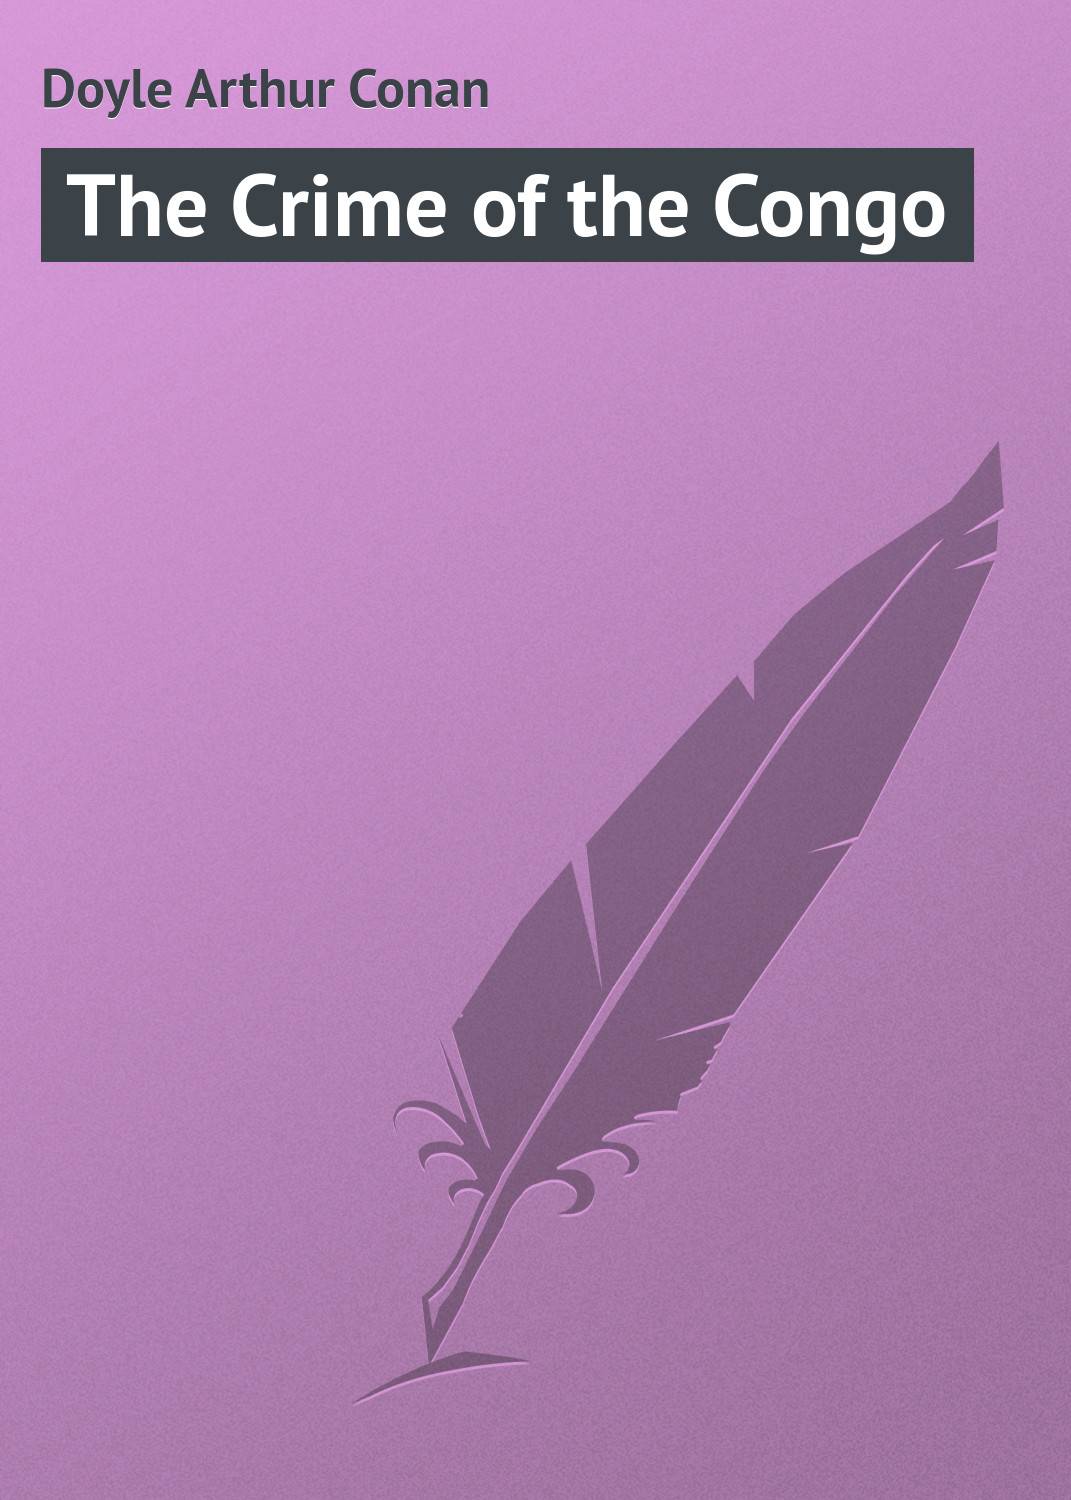 Doyle Arthur Conan The Crime of the Congo arthur conan doyle the poison belt